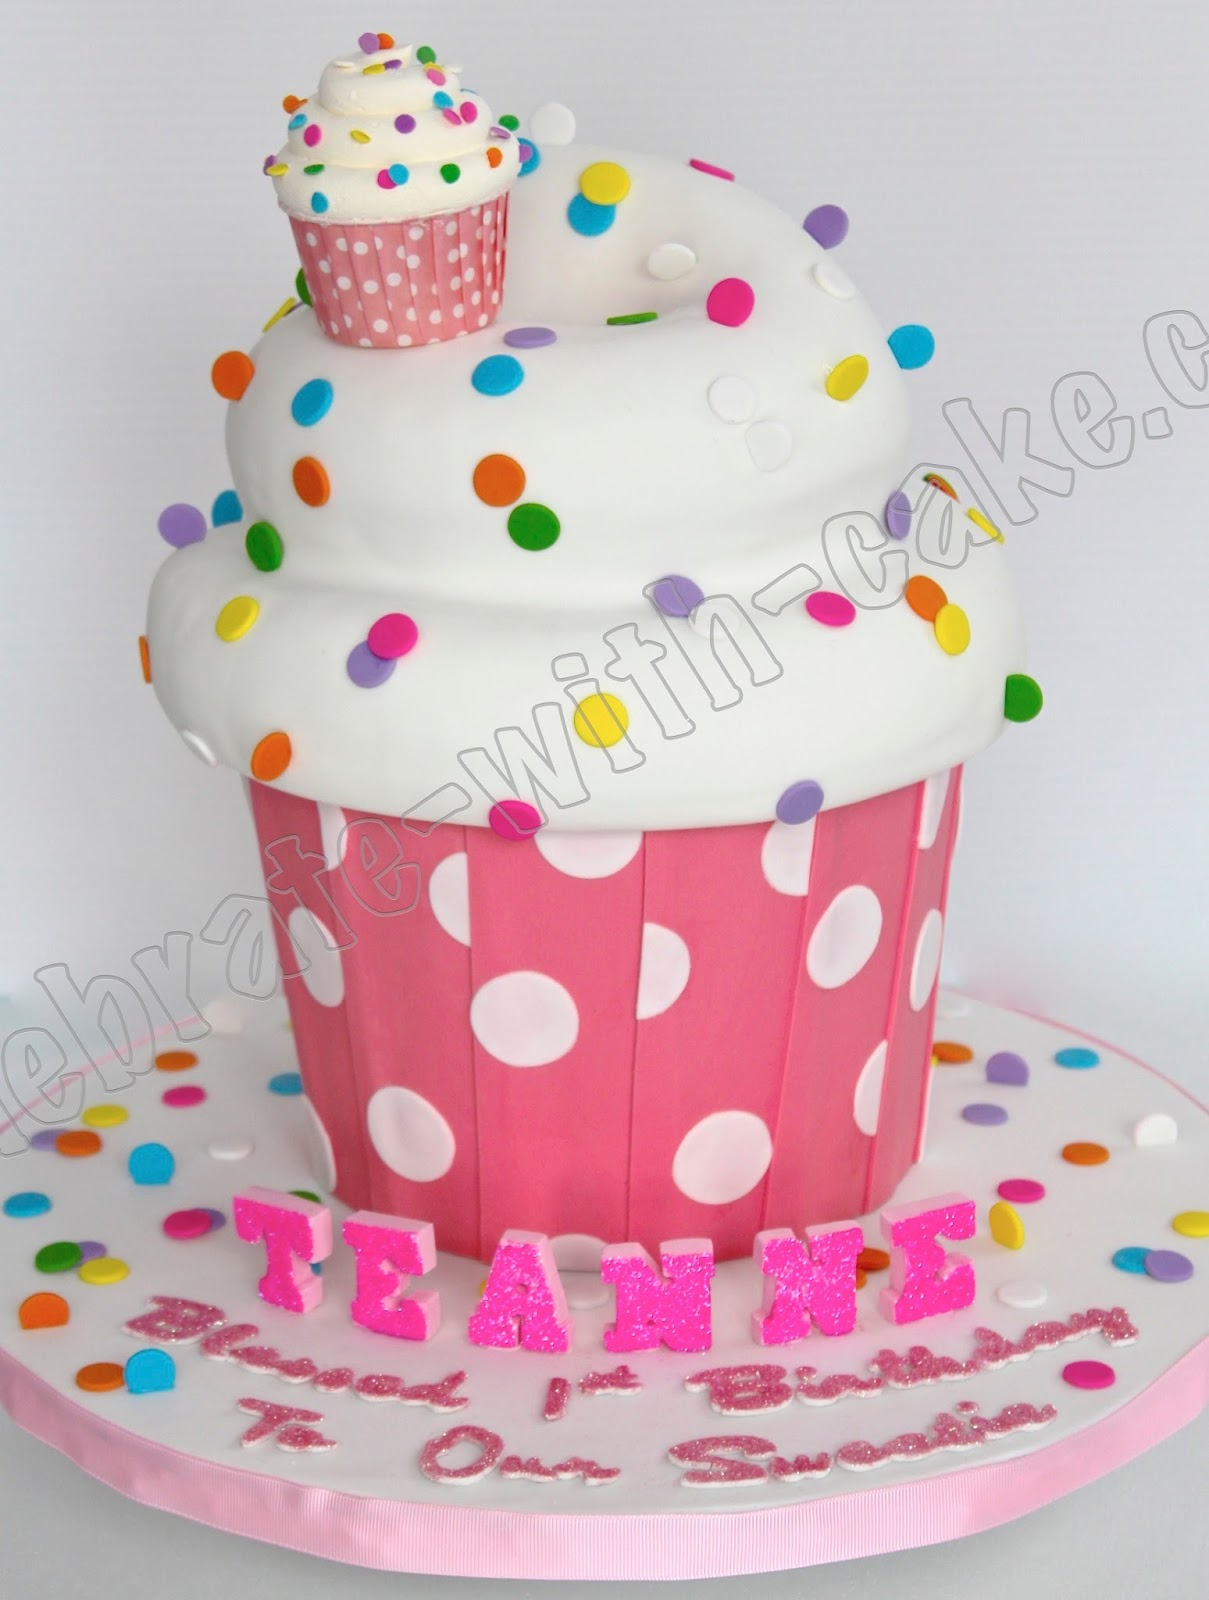 Celebrate With Cake 1st Birthday Giant Cupcake Sculpted Cake